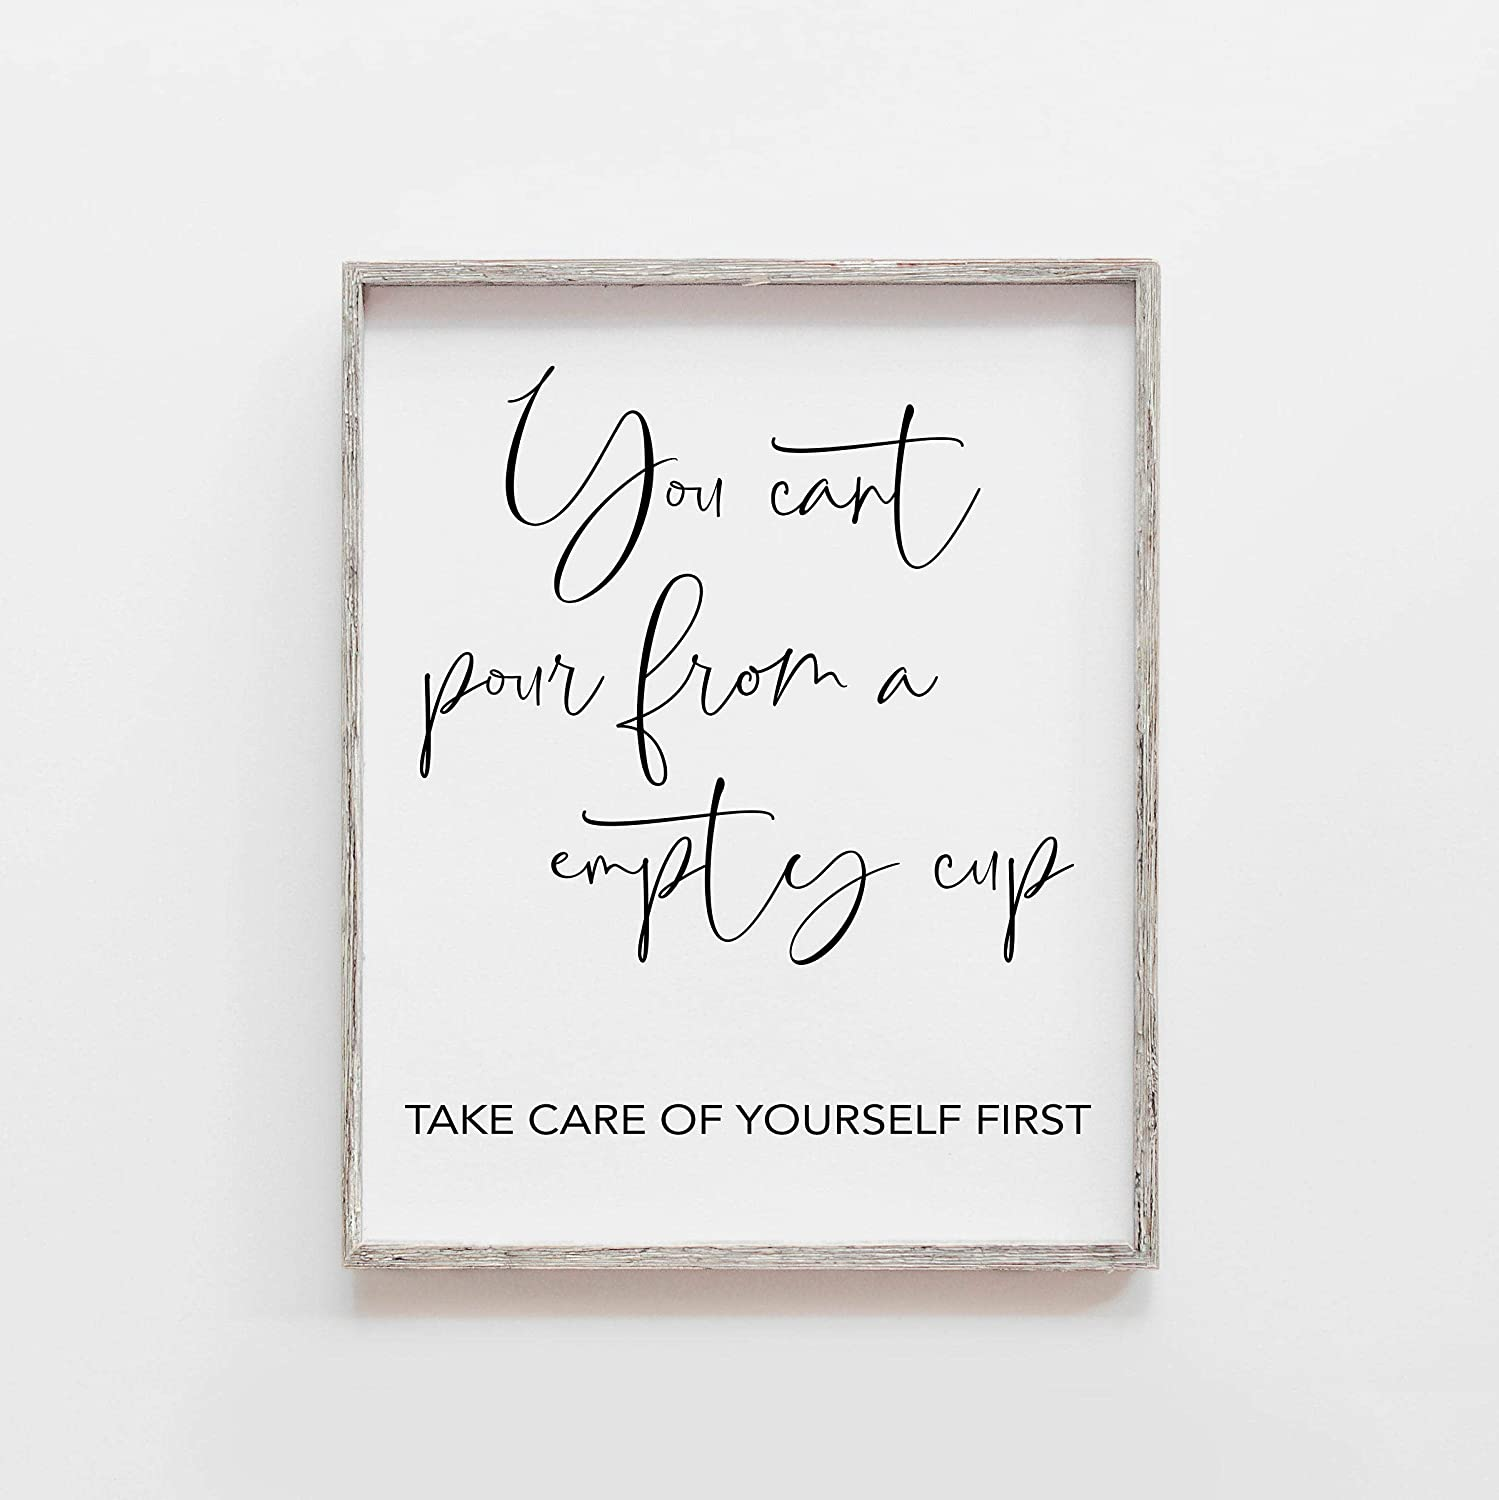 Popular product Farmhouse Frame Wood Sign Self Care Quote from latest You pour can't